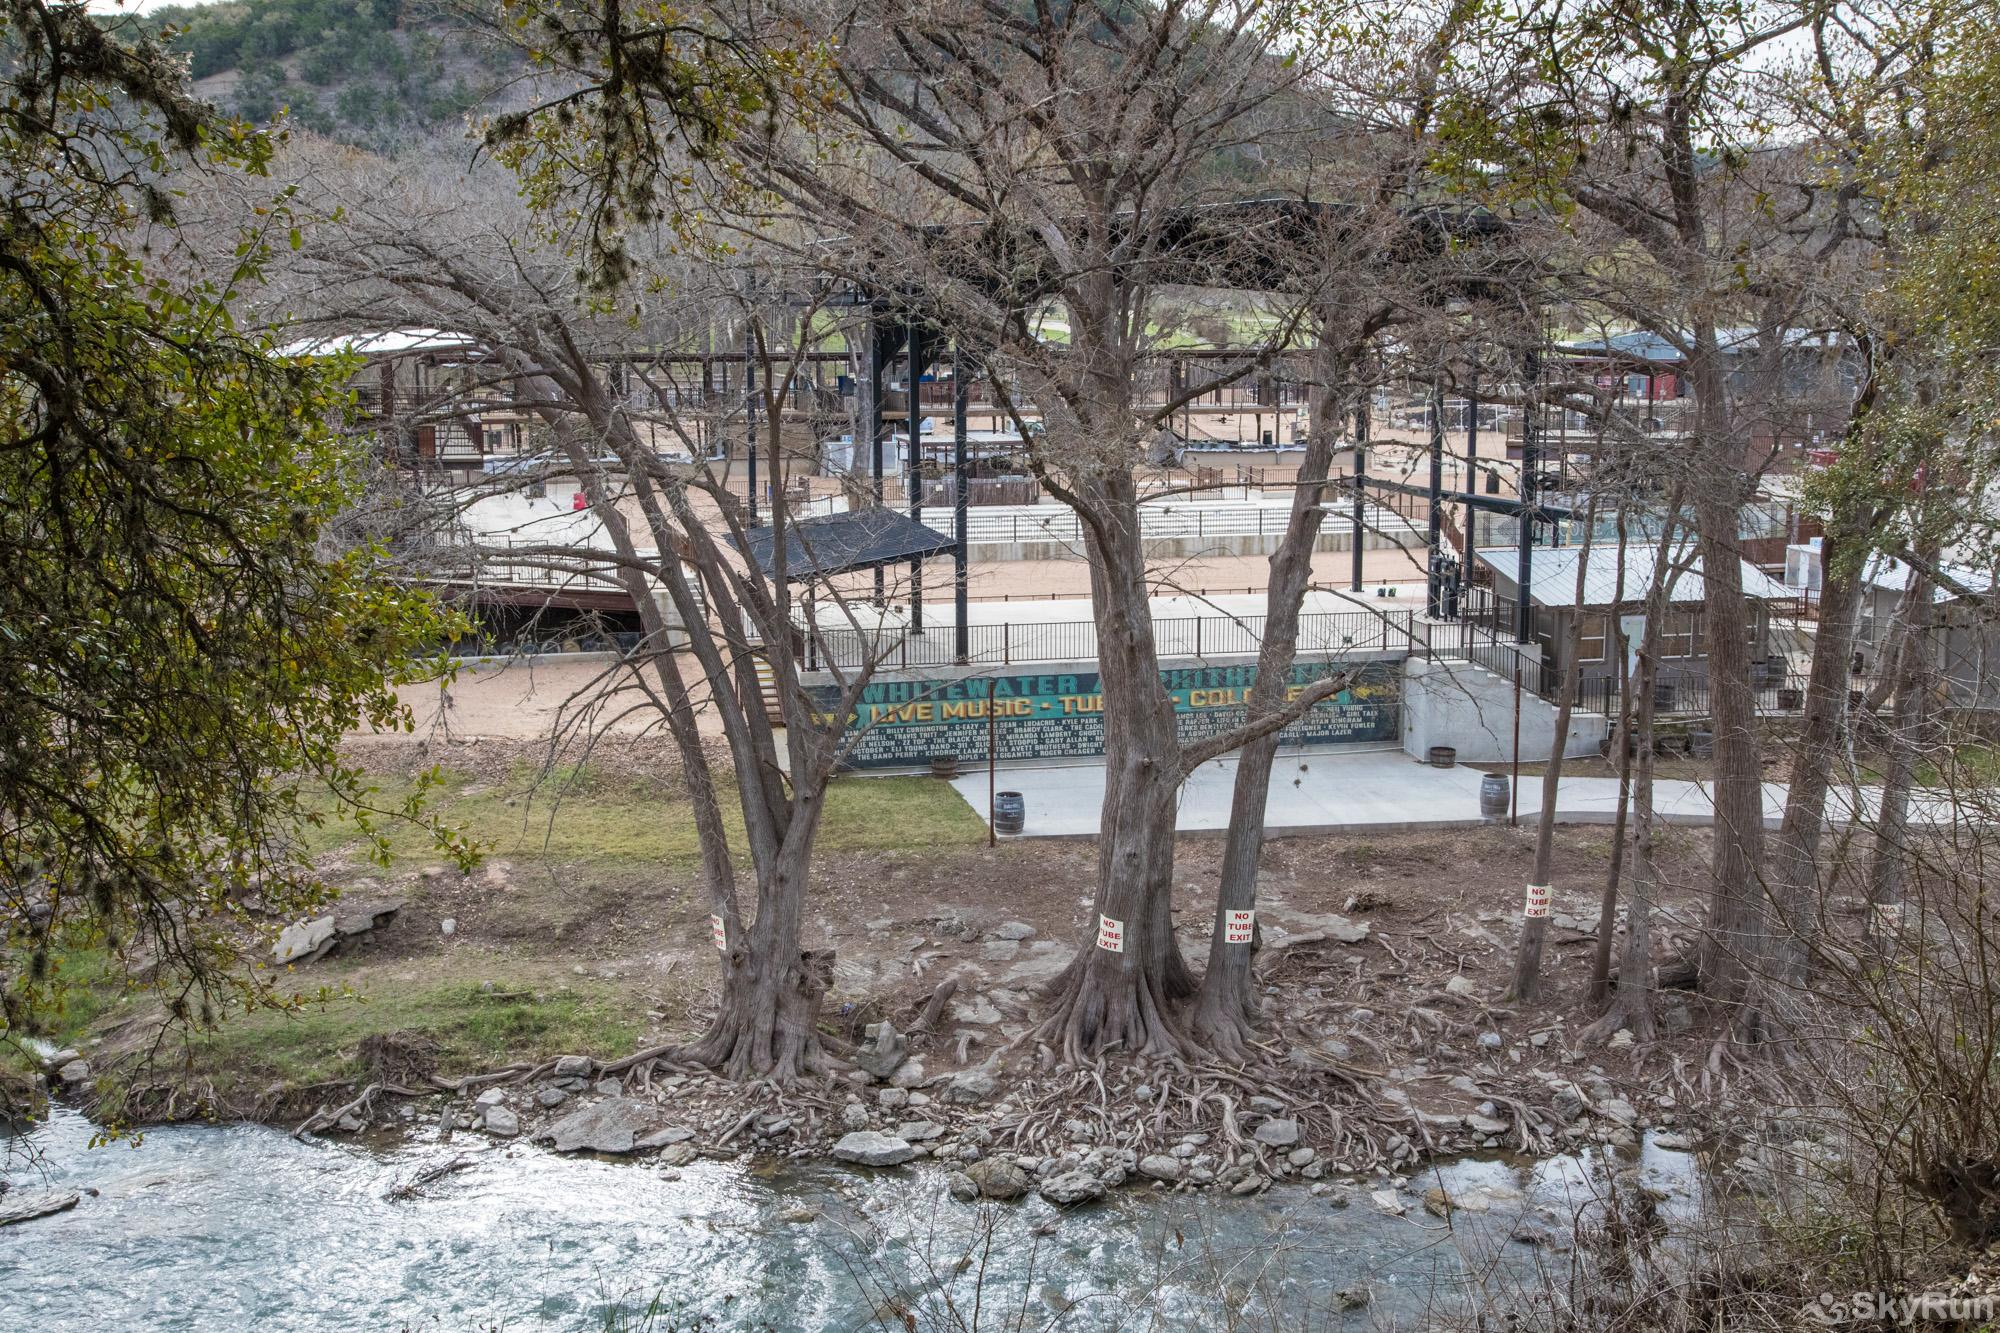 HONEY HAUS ON THE HORSESHOE Whitewater Amphitheater Across the Guadalupe